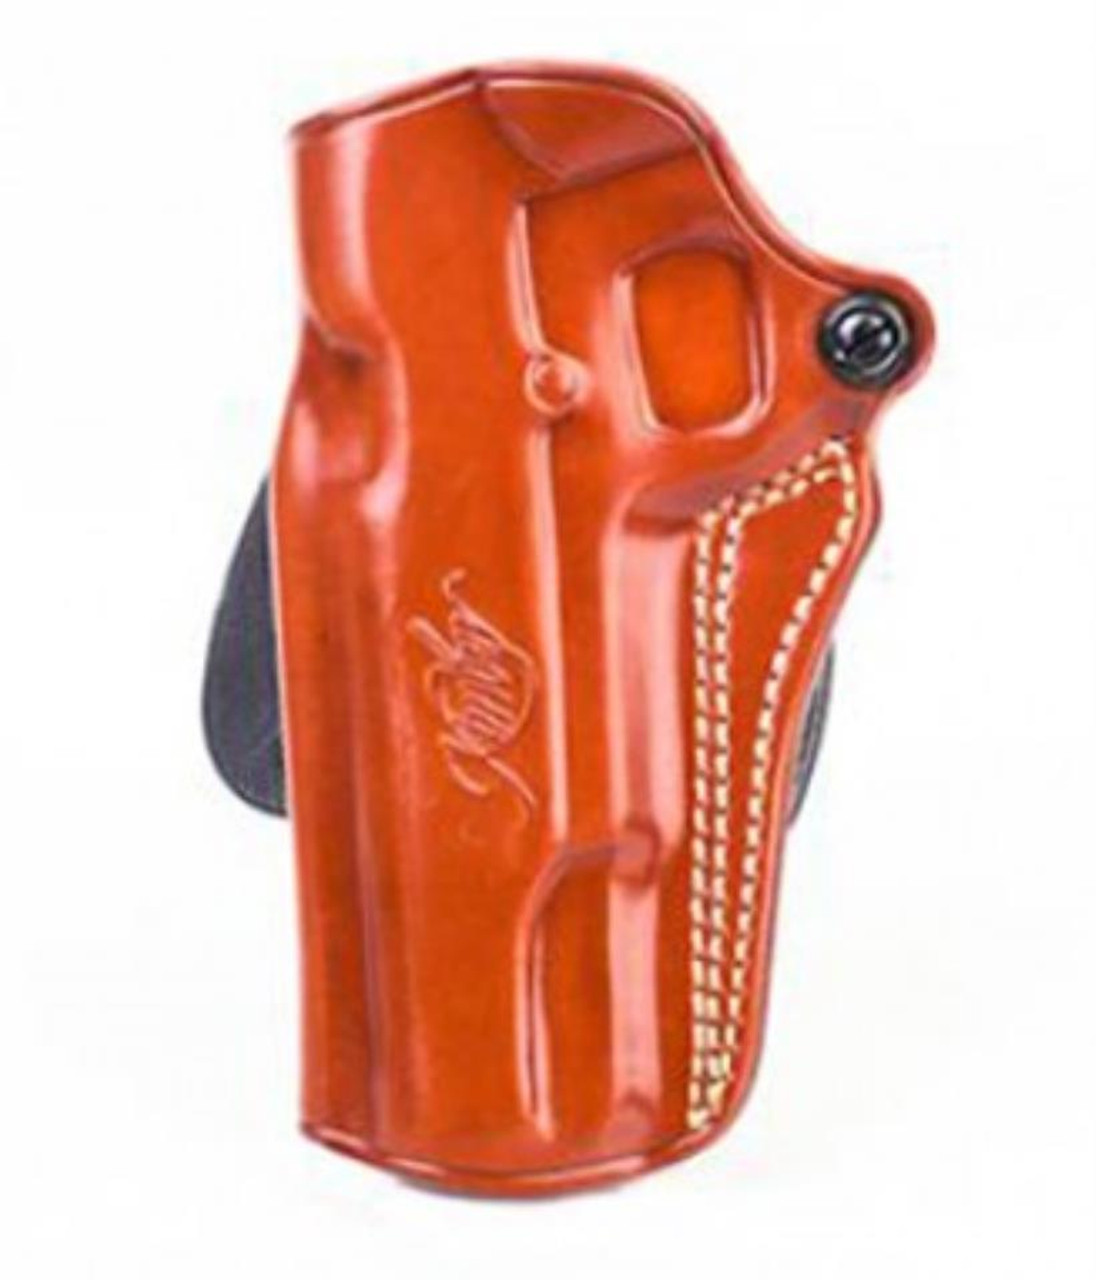 Kimber Speed paddle holster (left hand) for full-size (5